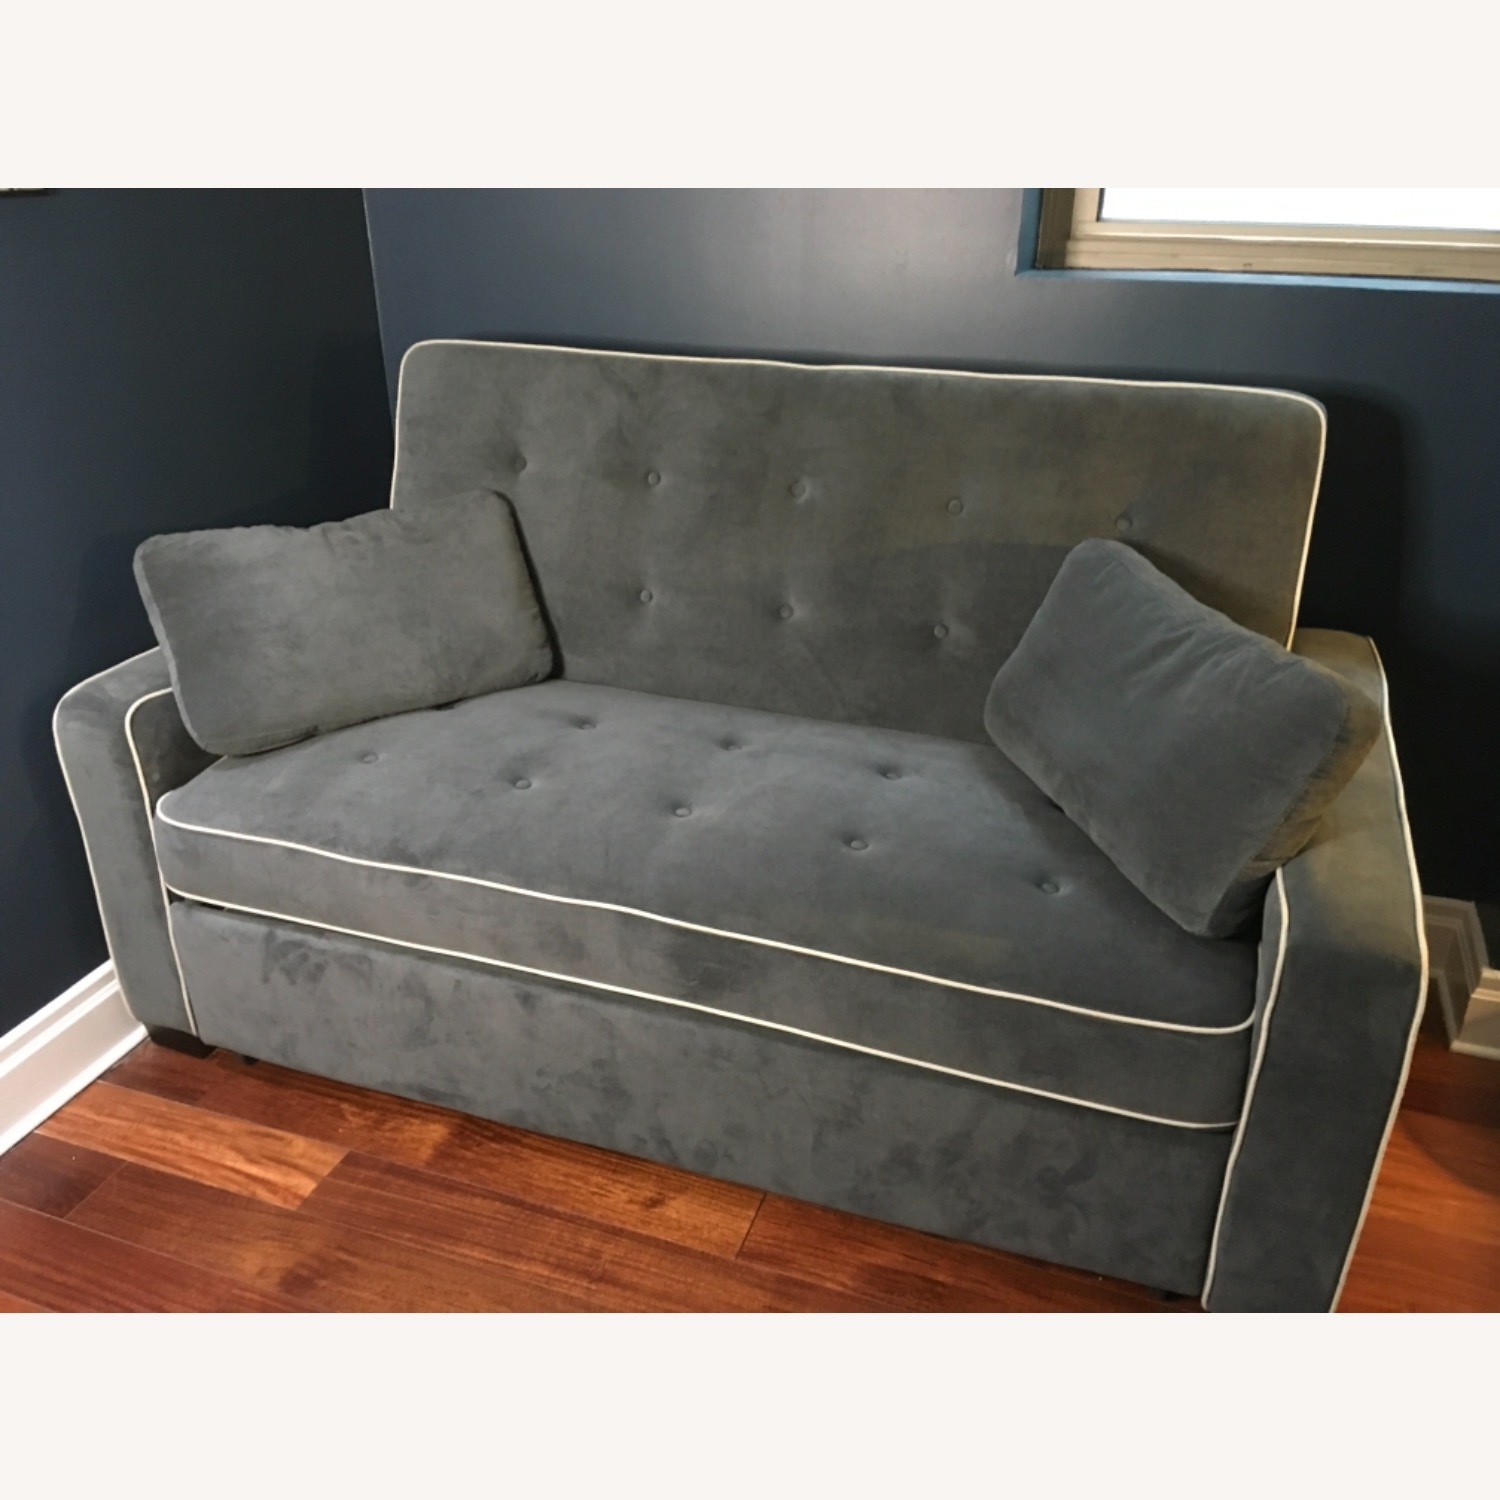 Zipcode Design Evan Sleeper Sofa by Serta - image-1